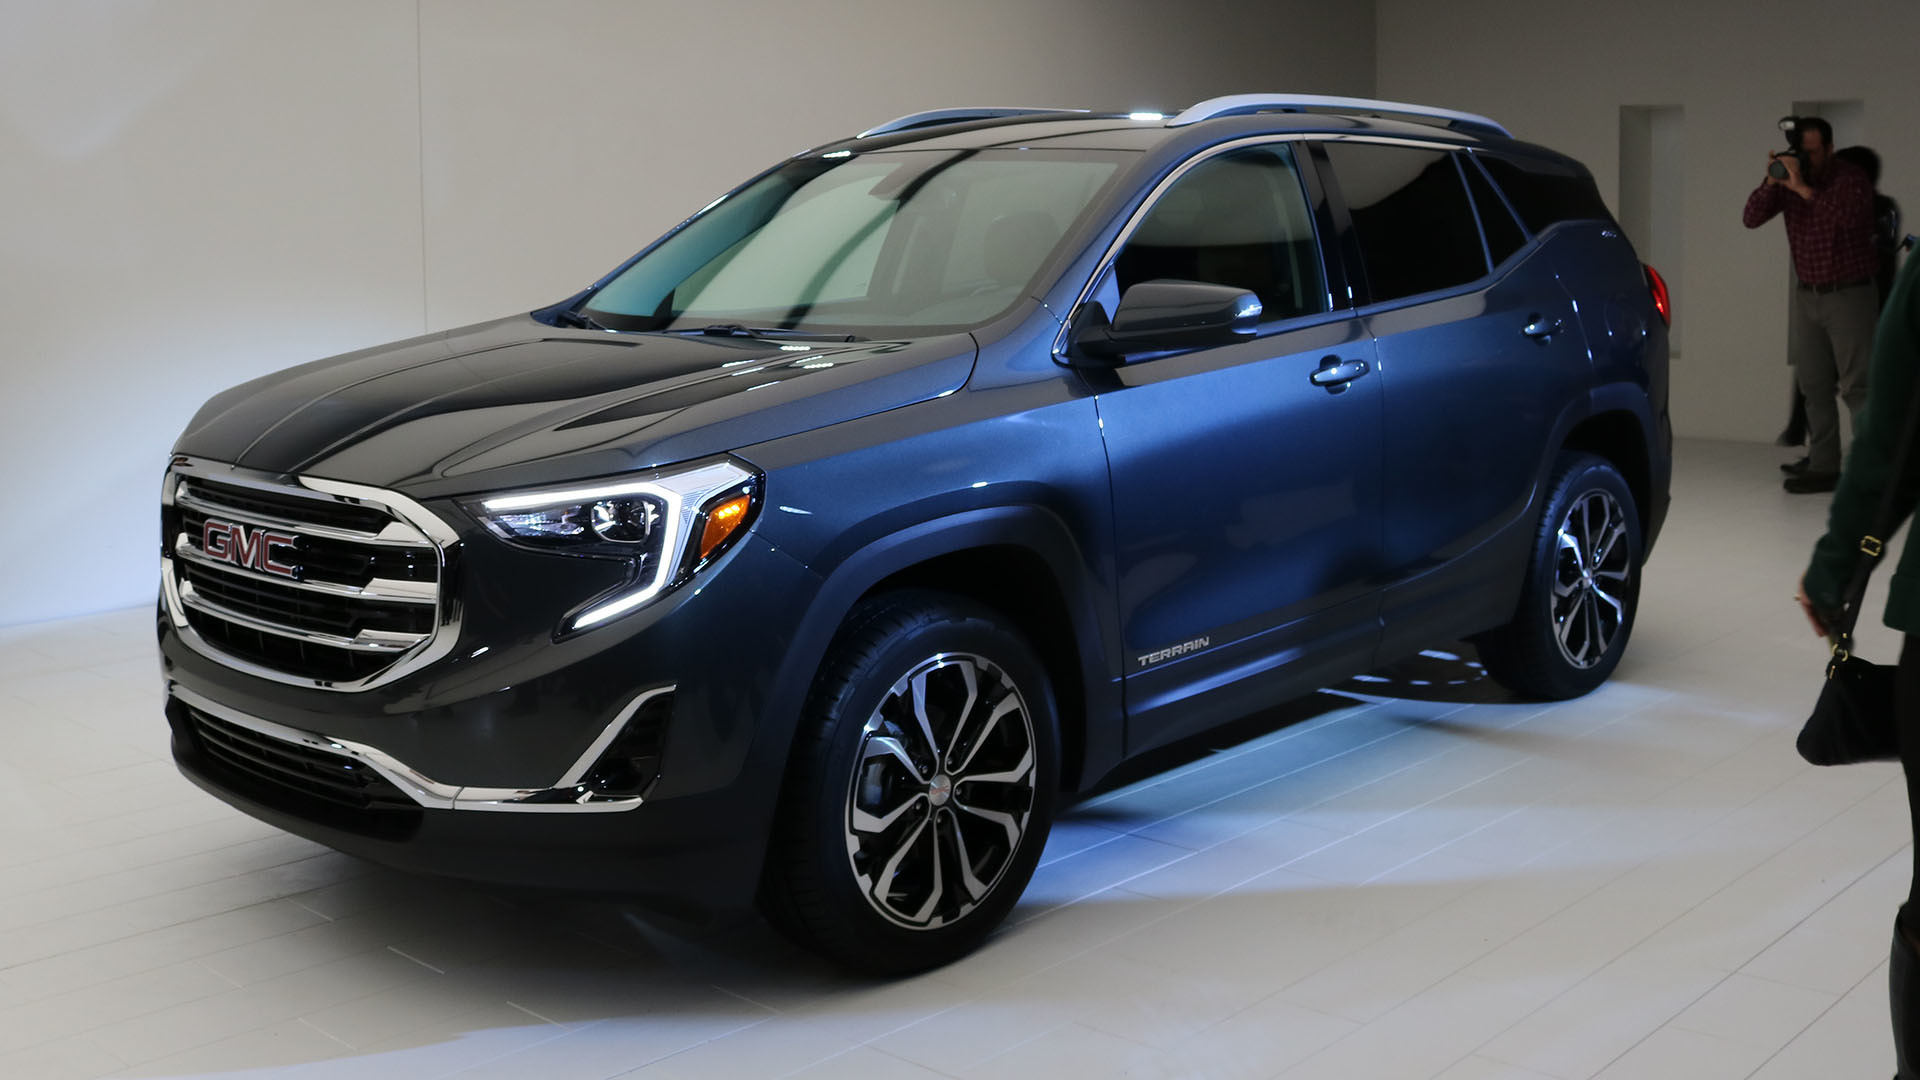 detroit compact slashgear moves to all small at turbocharged gmc terrain suv line auto tags up